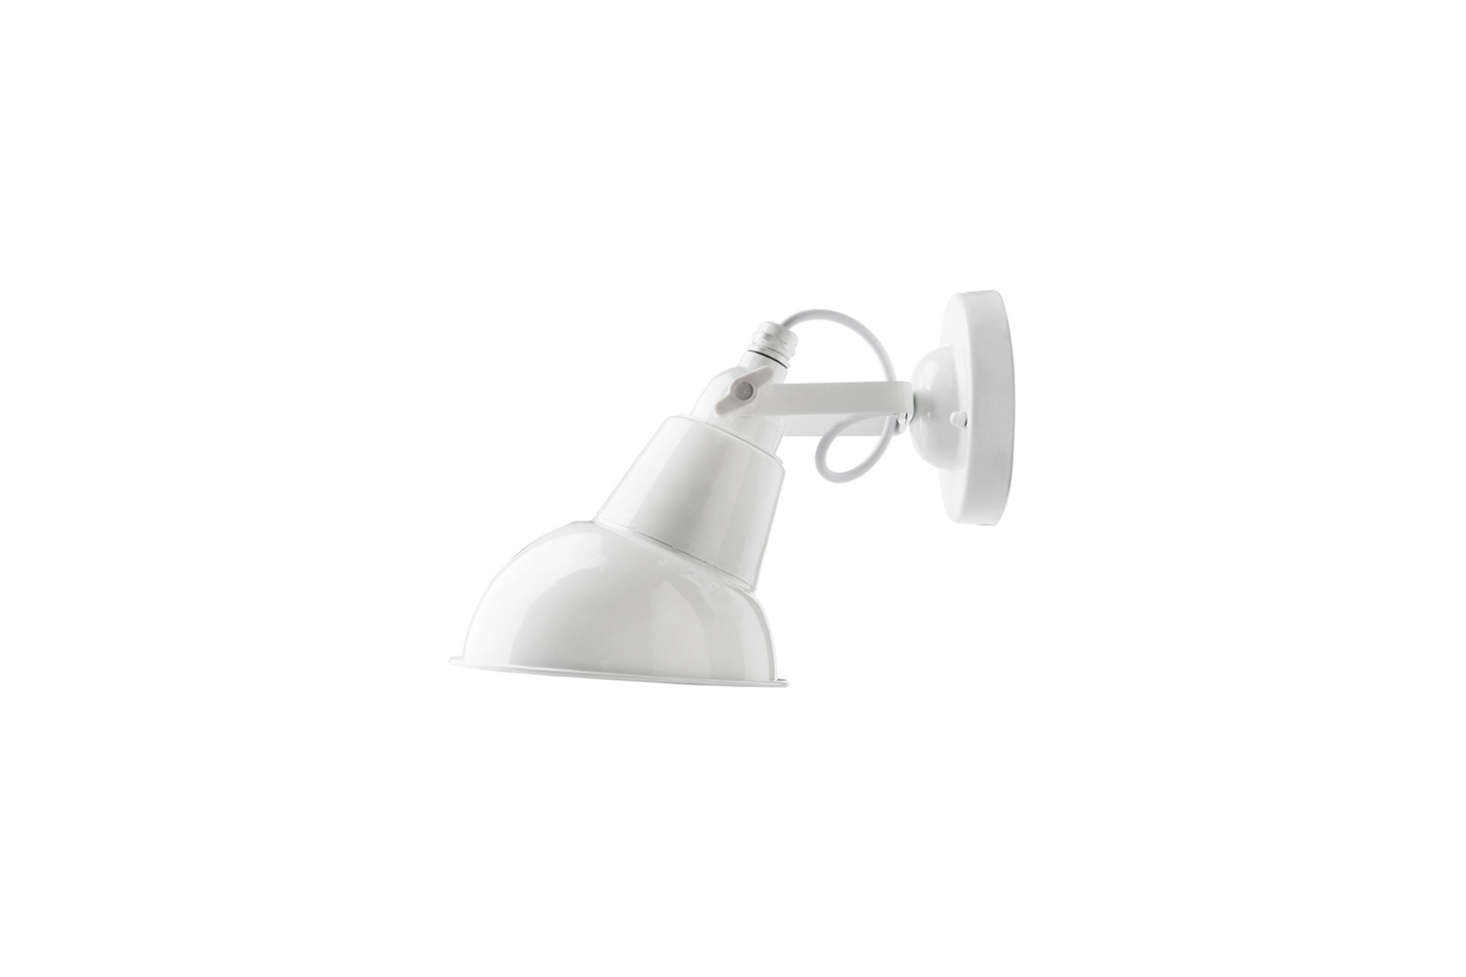 Another affordable design from Zangra, the White Steel Wall Lamp with a metal shade, is €43 at Zangra.